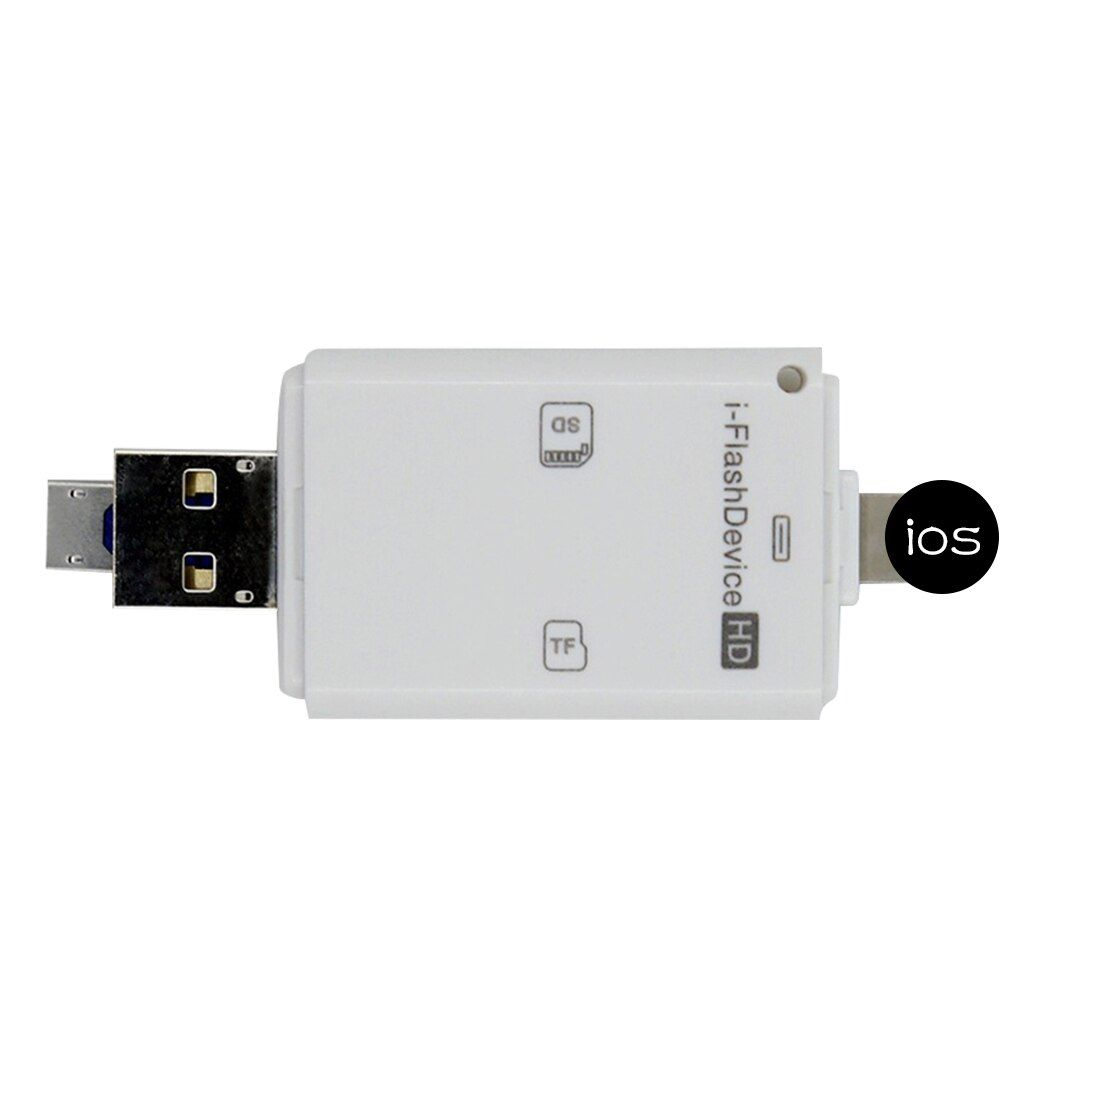 Etmakit 3in1 Micro USB Lecteur Micro SD SDHC TF Carte SD Pour iPhone 5/5S/6/6 7 plus/ipad pro air/Samsung/LG/HTC Andrid OTG Téléphones